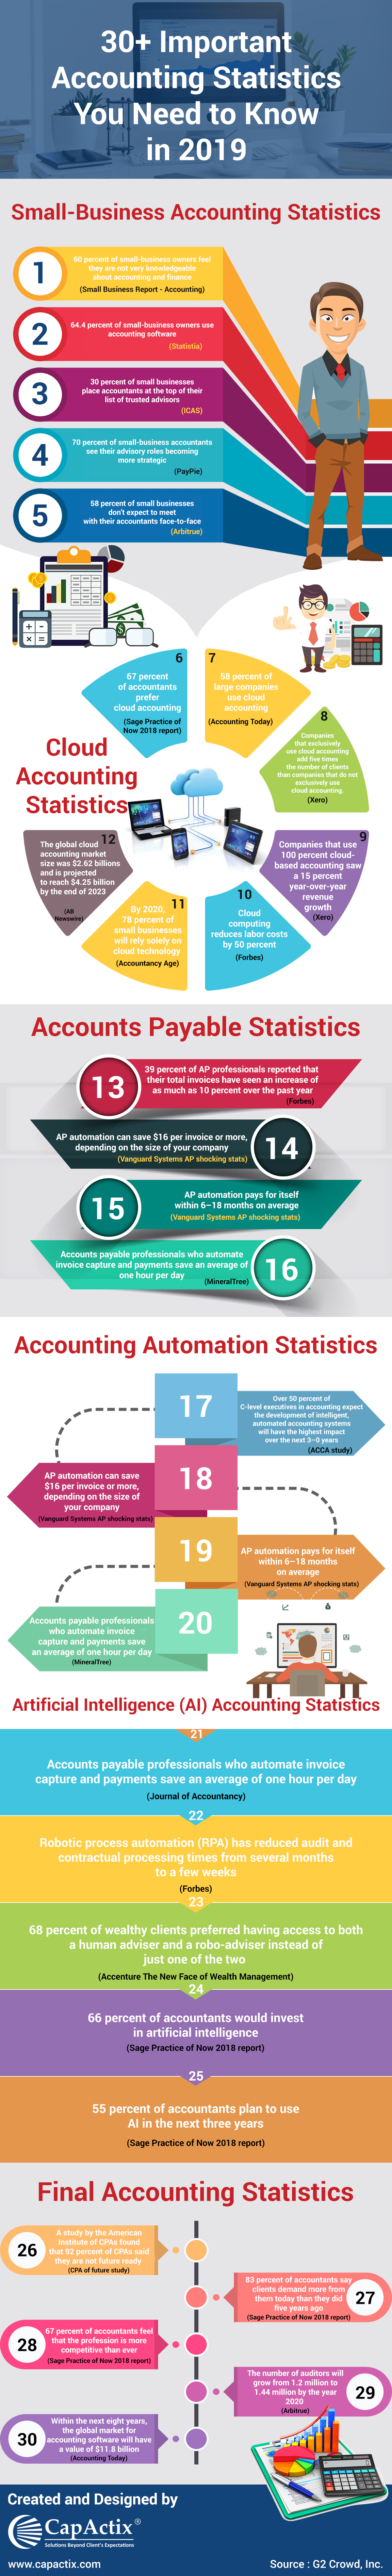 30+ Important accounting statastics you need to know in 2019